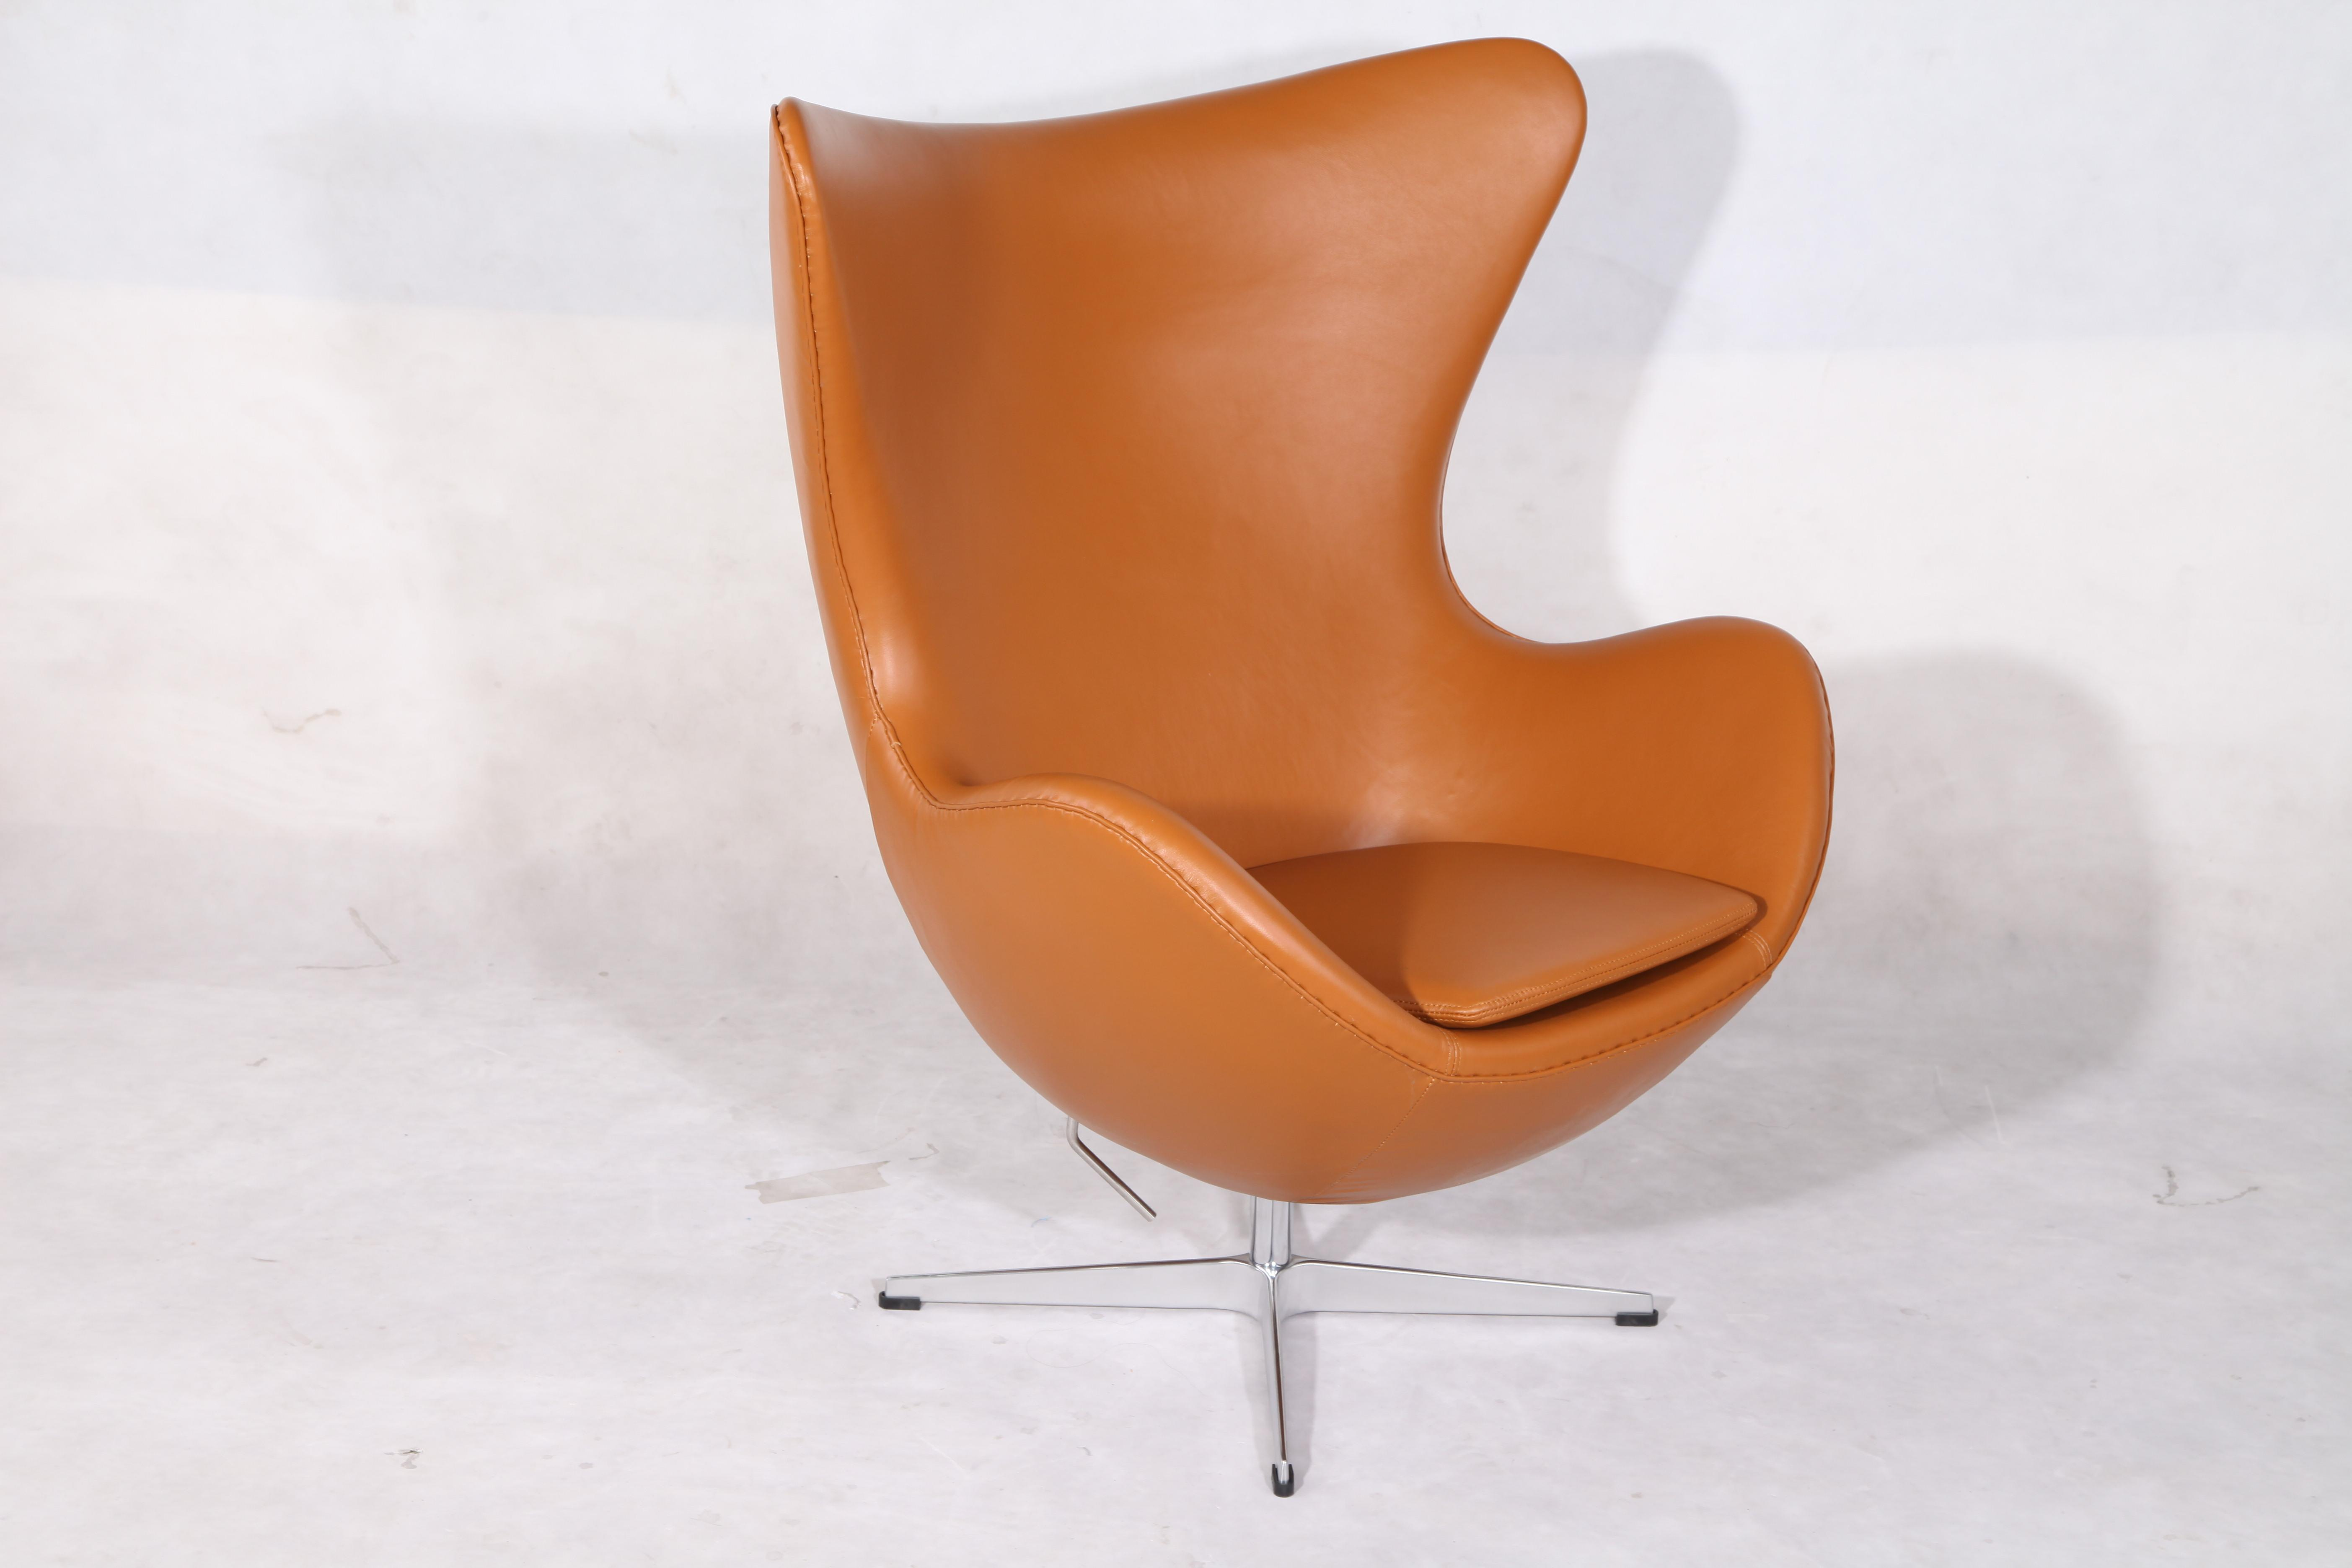 egg chair cognac leather reproduction